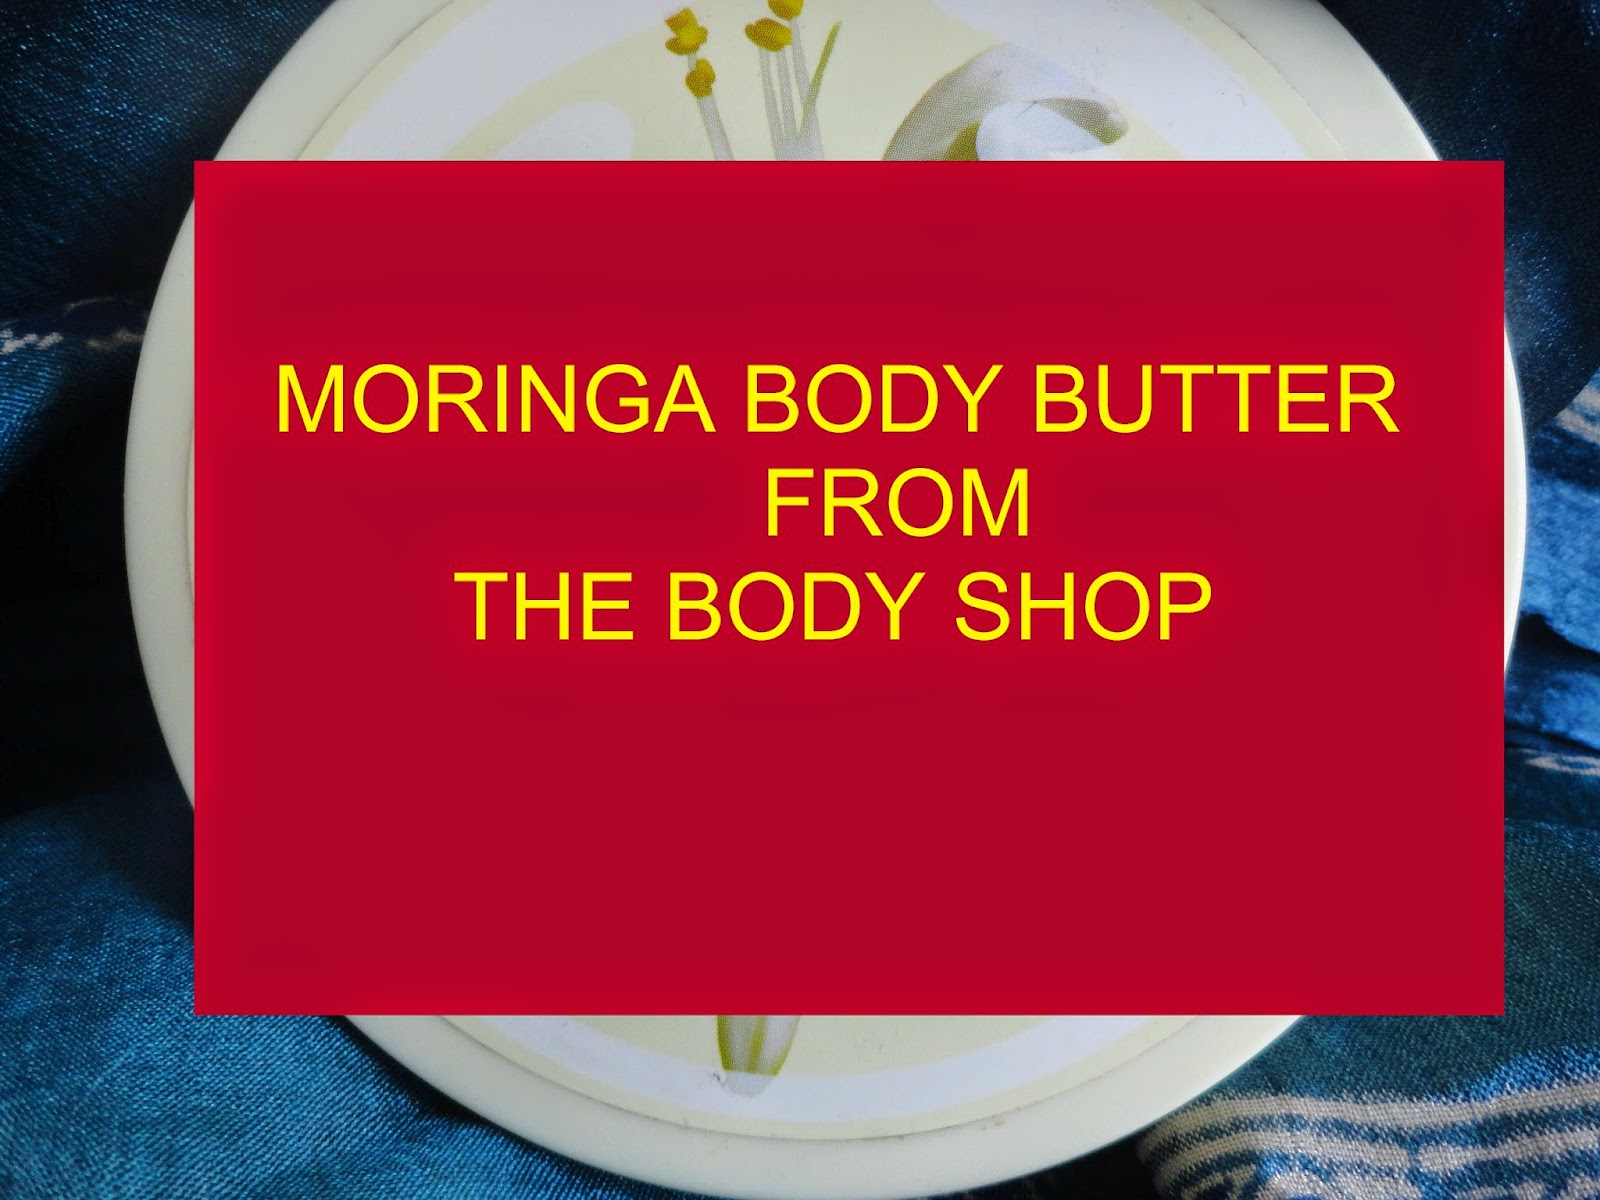 REVIEW: The Body Shop Moringa Body butter image